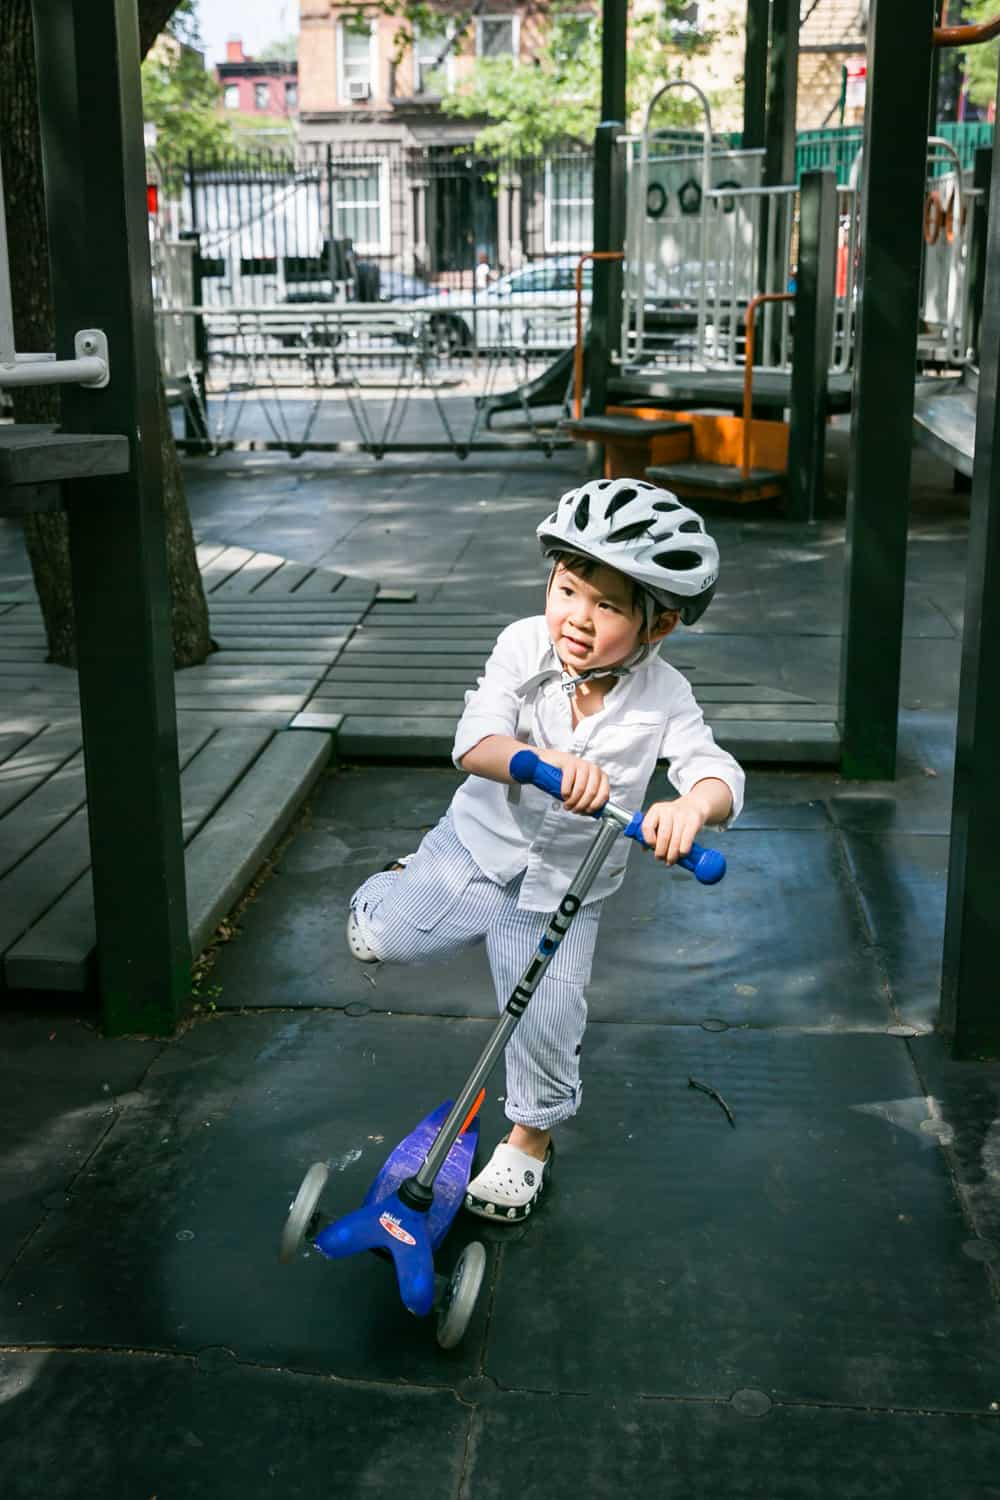 Little boy on scooter wearing bike helmet in playground